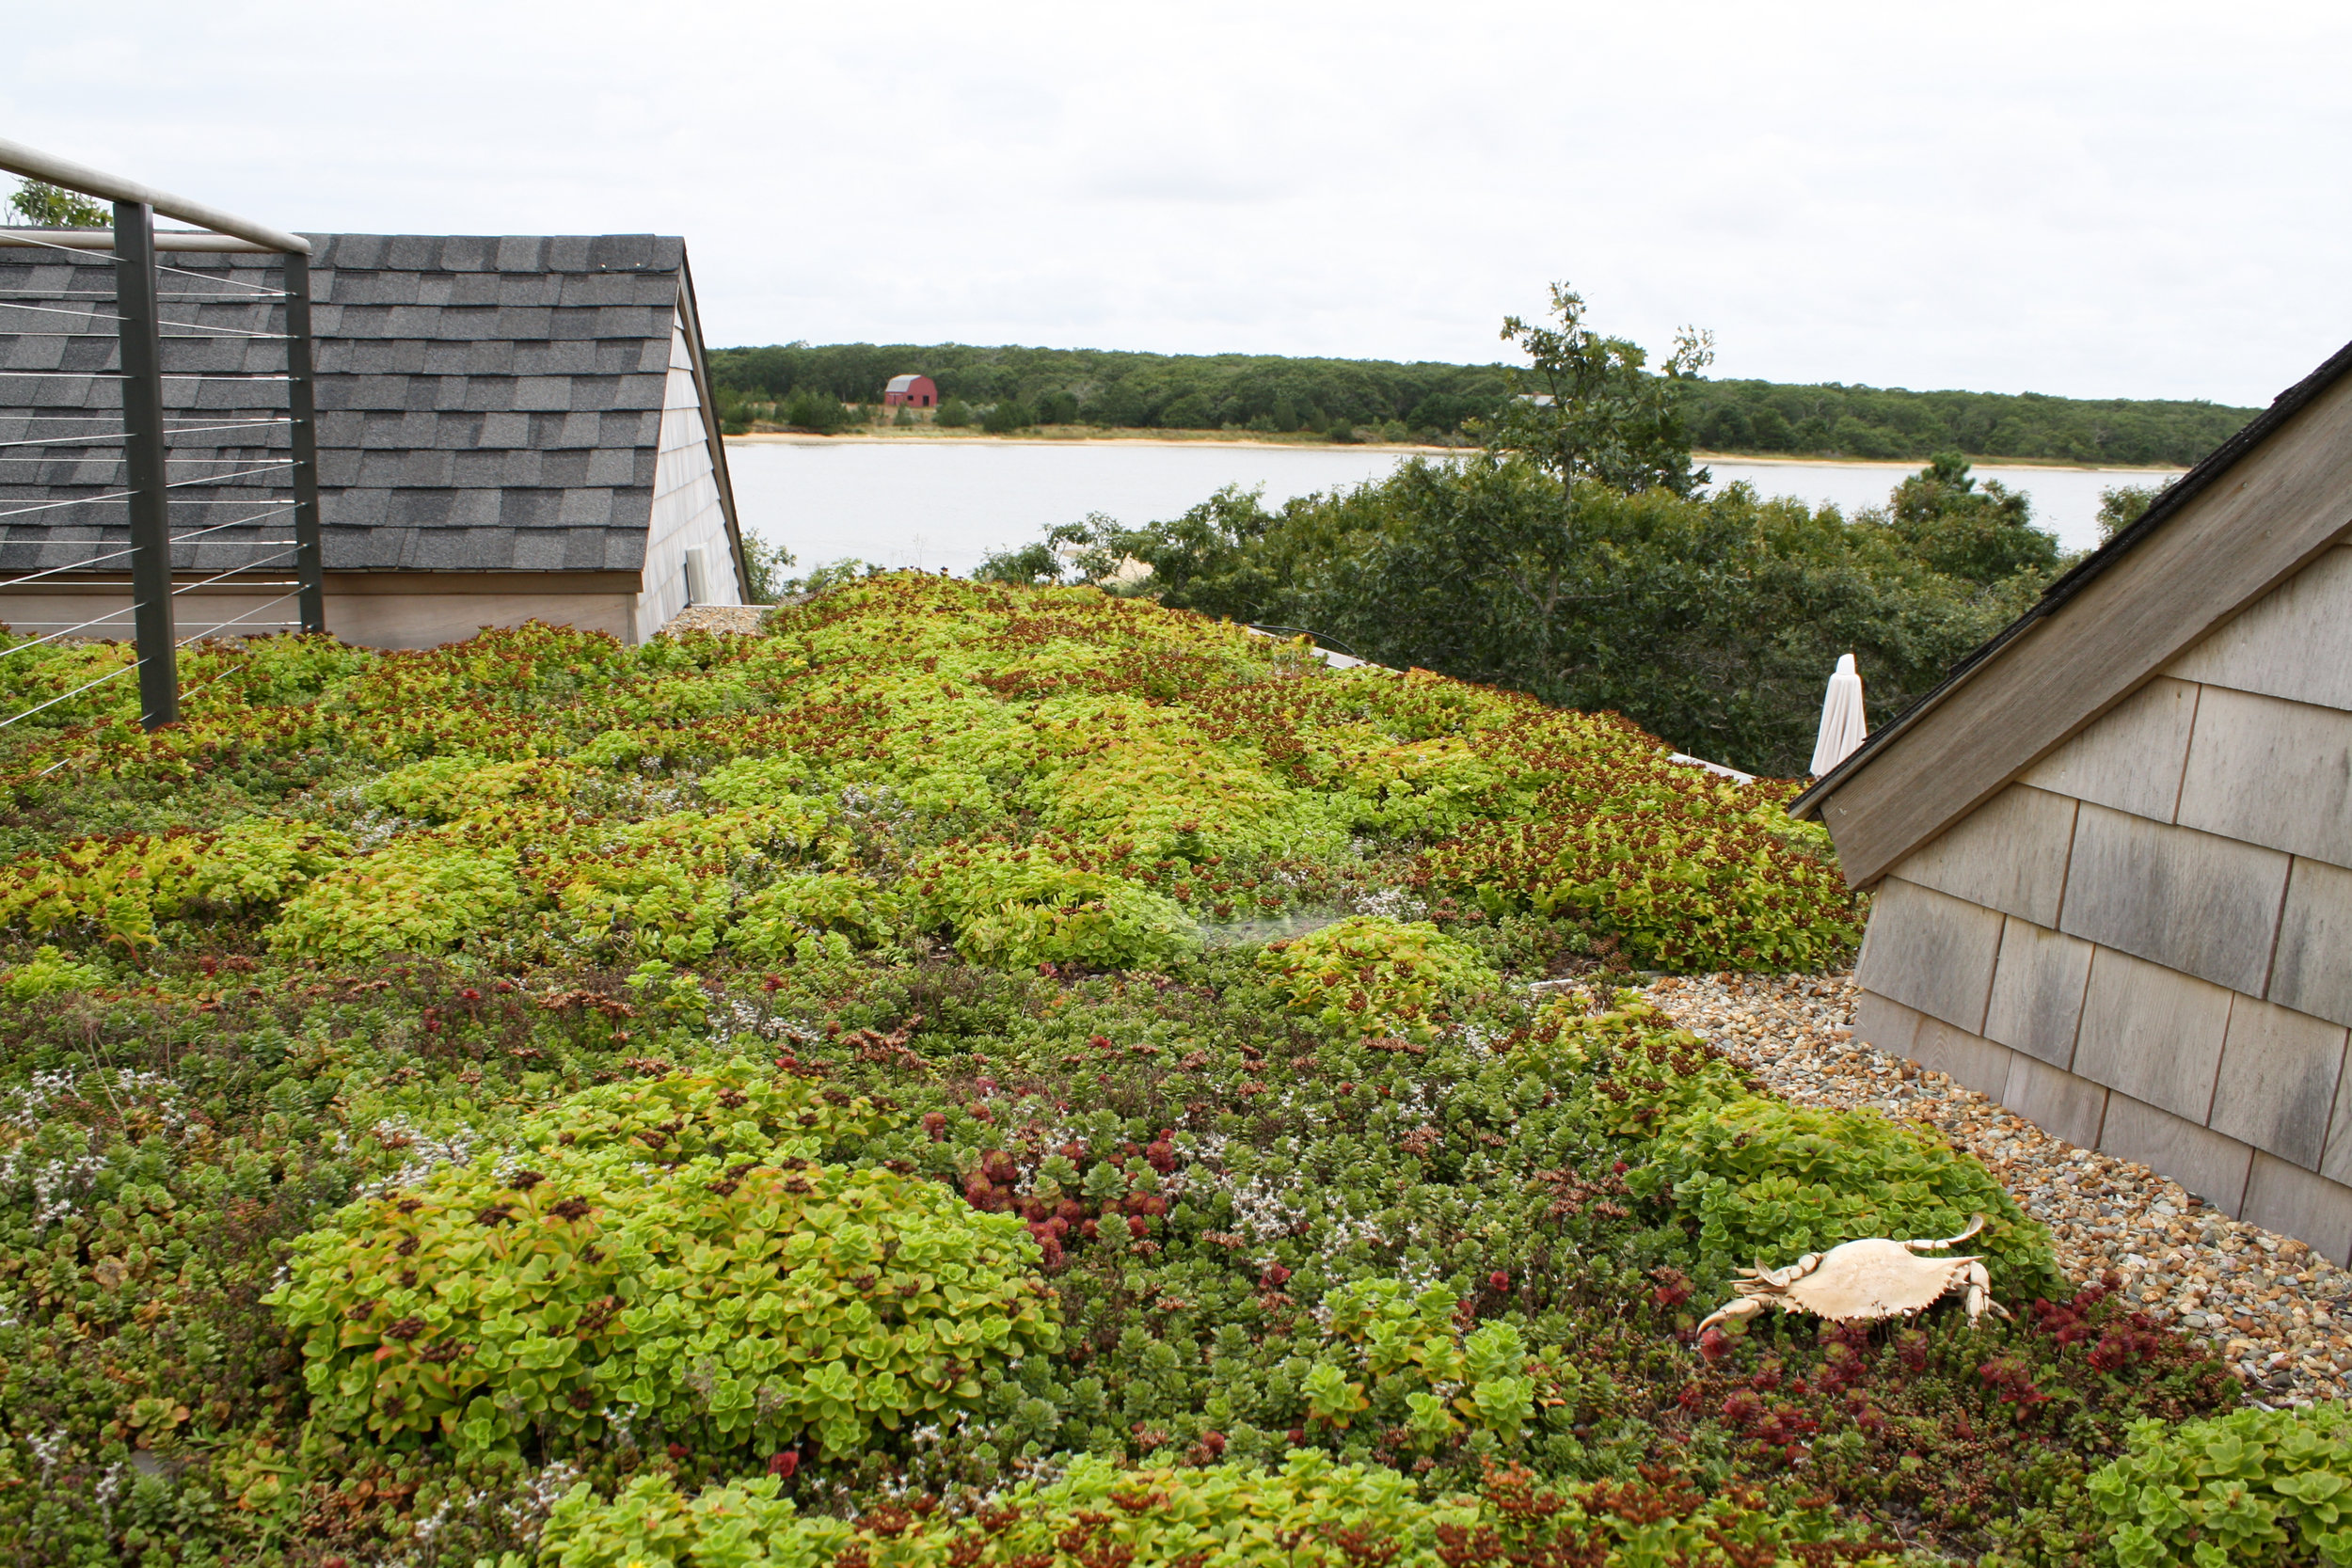 Recover-Green-Roofs-Residential-Green-Roof-Marthas-Vineyard-4